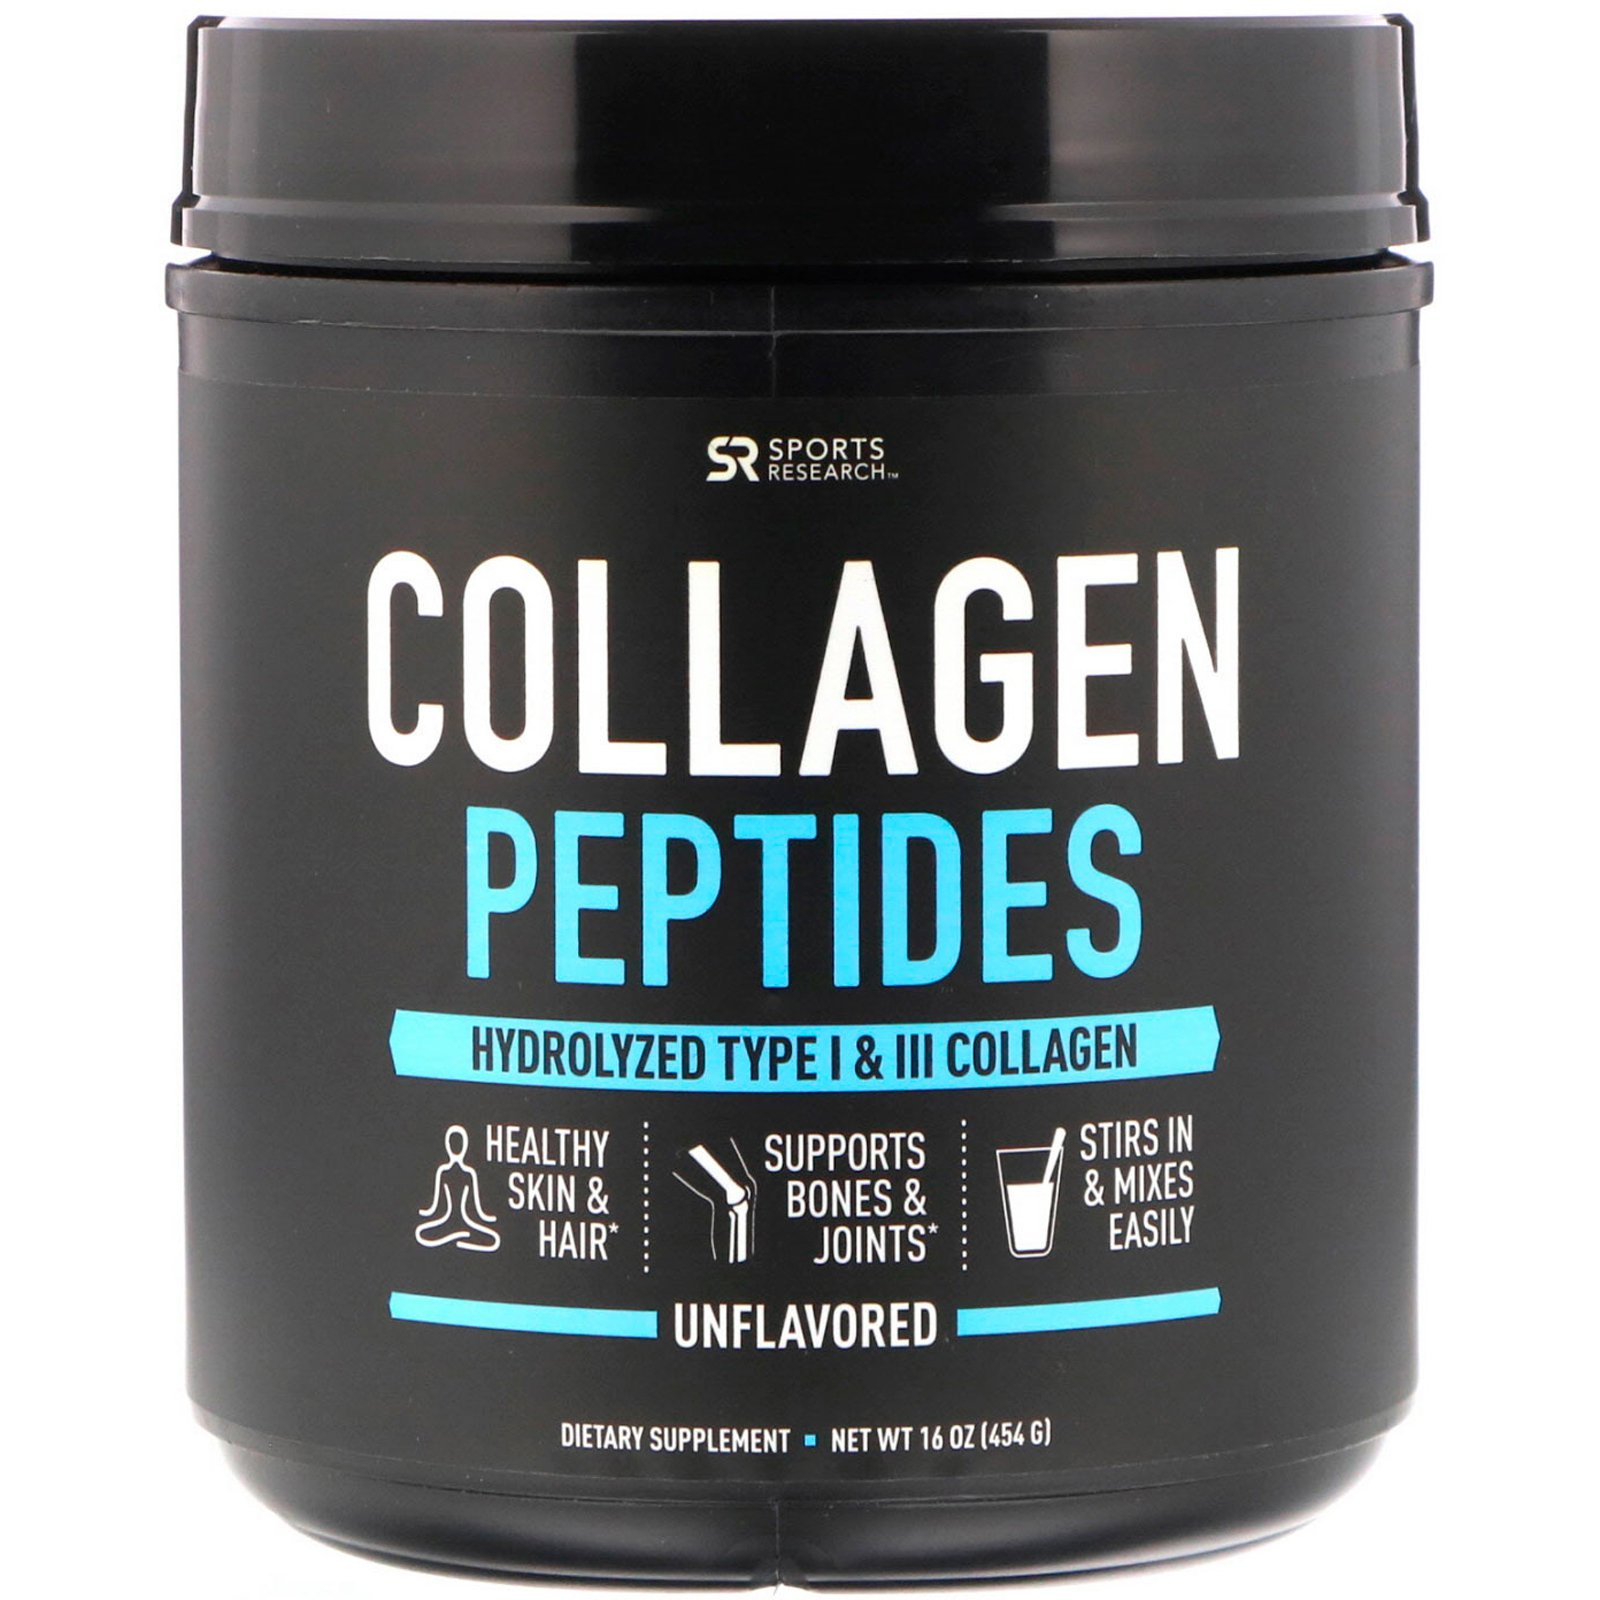 Sports Research Collagen Peptides, Unflavored, 16 oz (454 g)